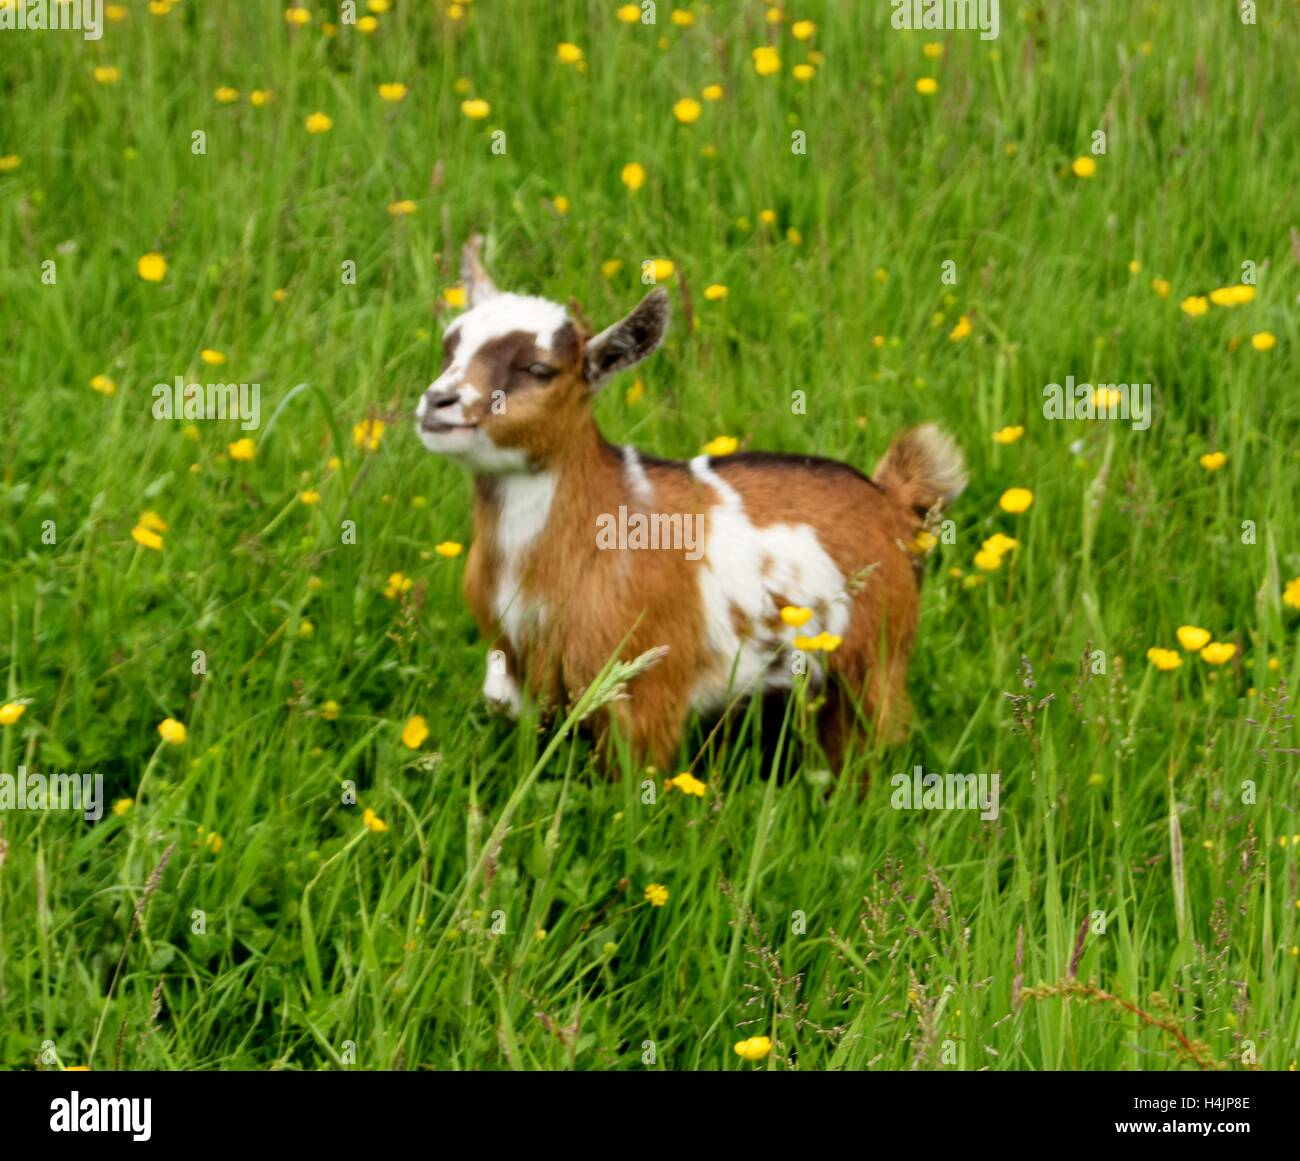 Pet Pygmy goat kid in an English meadow - Stock Image